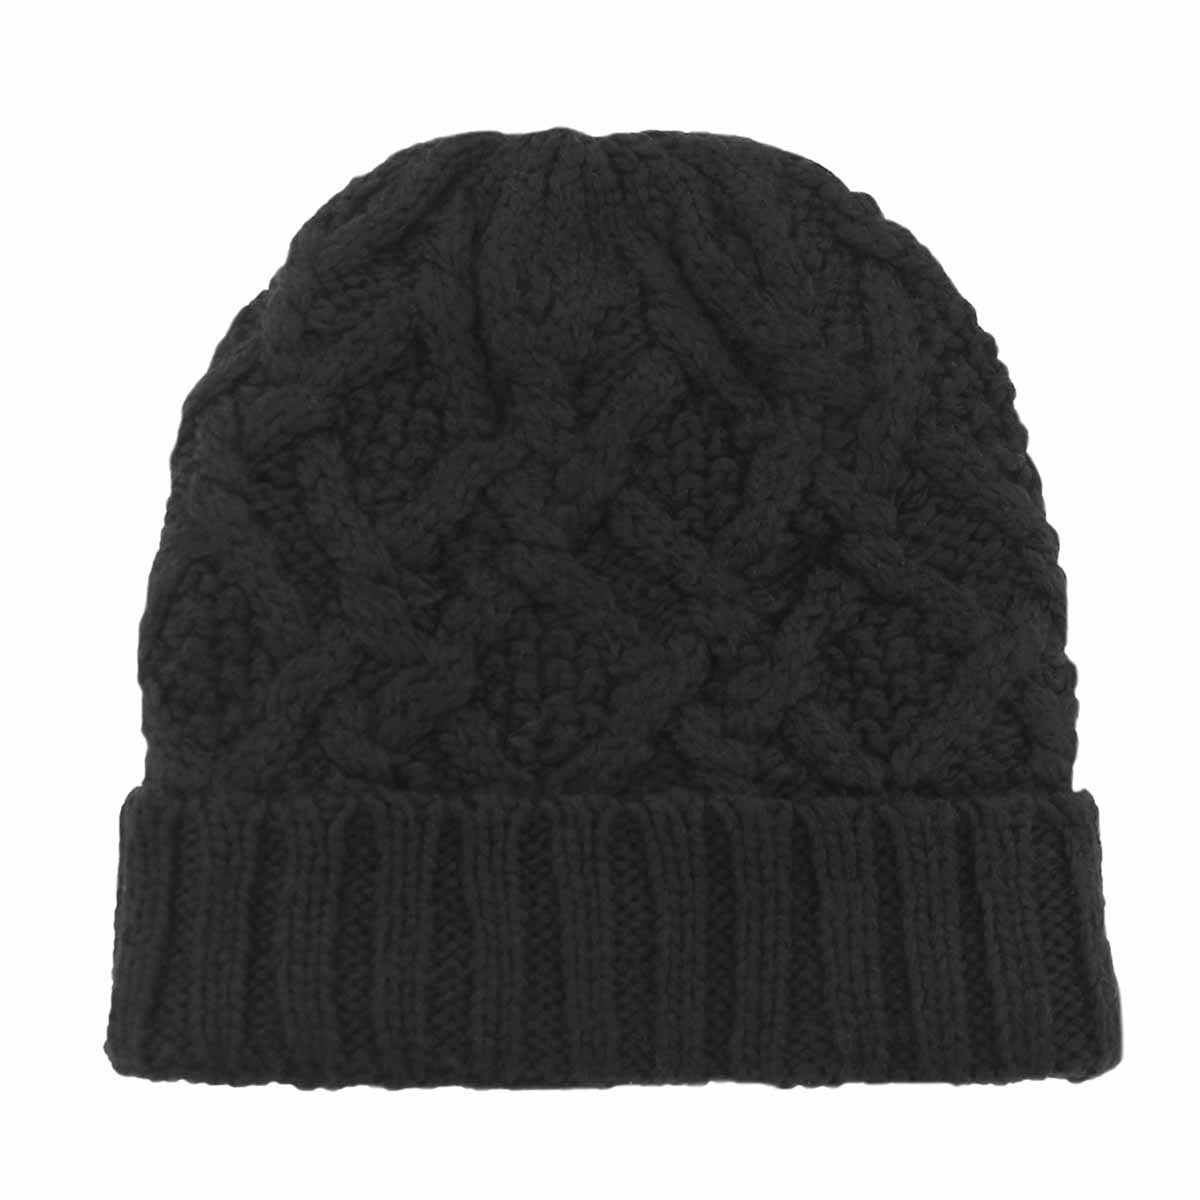 Women's CABLE KNIT black lined hat